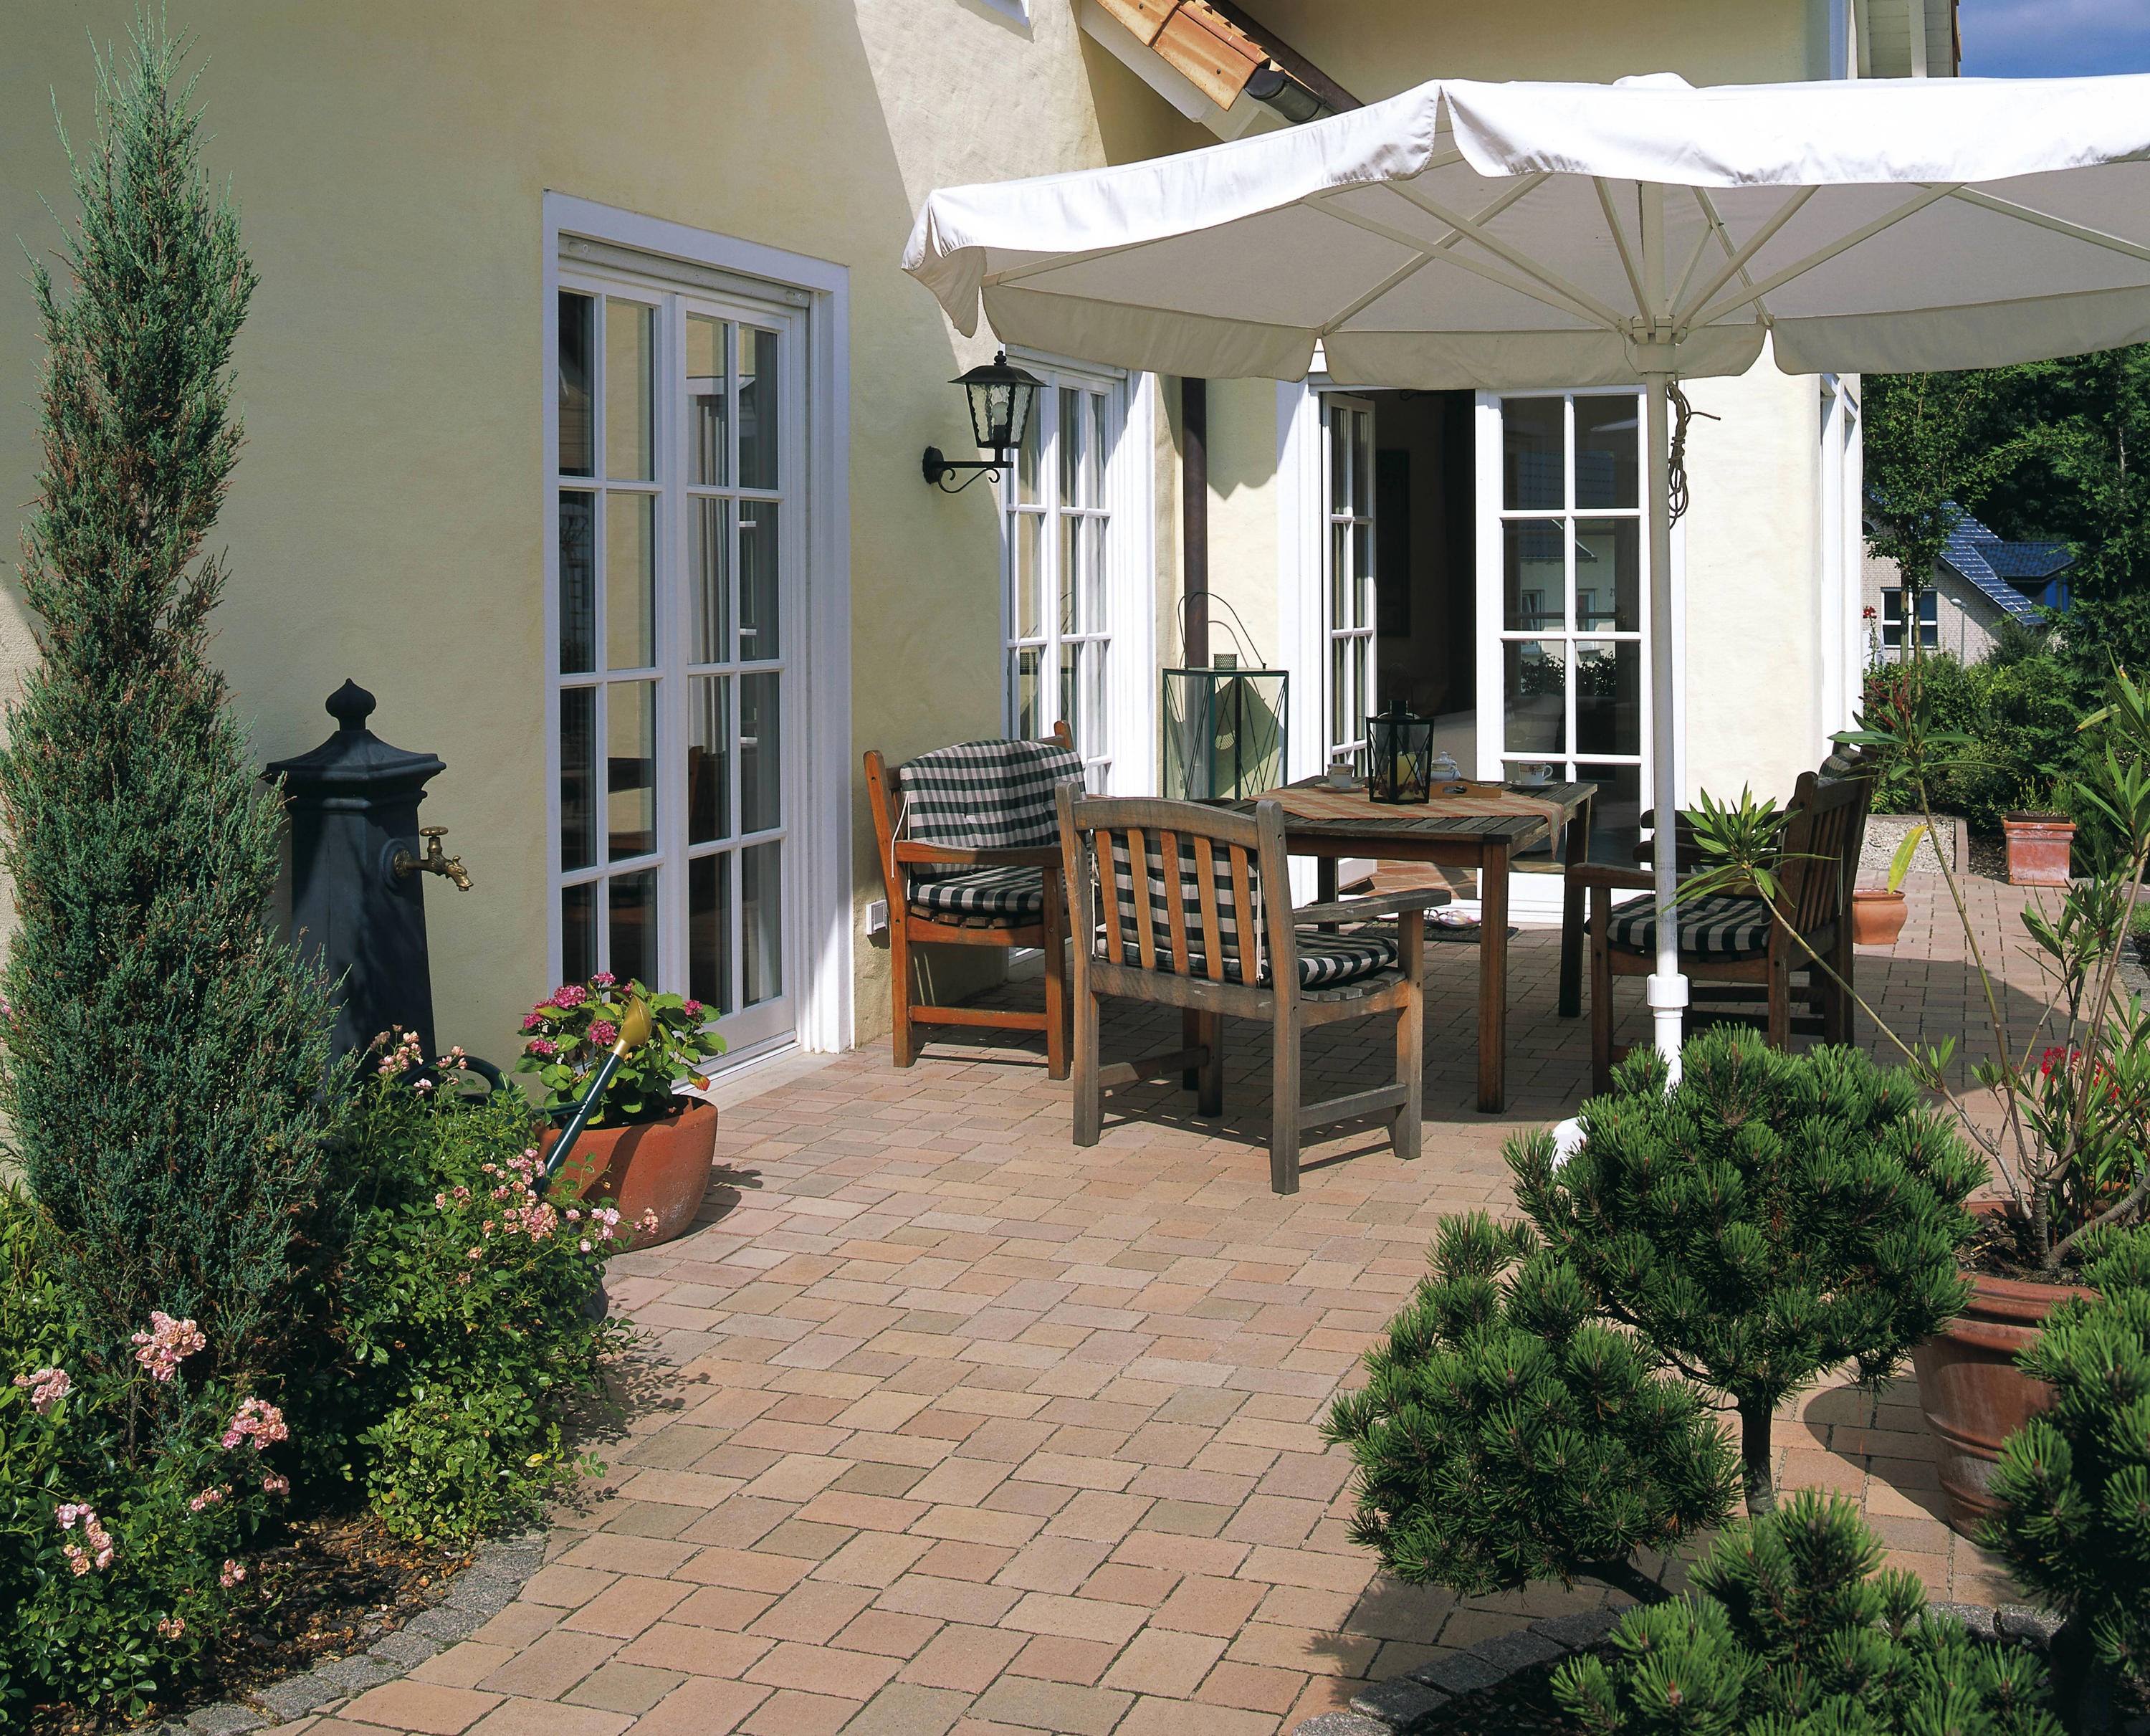 TERRA TOSCANA PFLASTER ANTHRAZIT CHANGIEREND Paving stones from